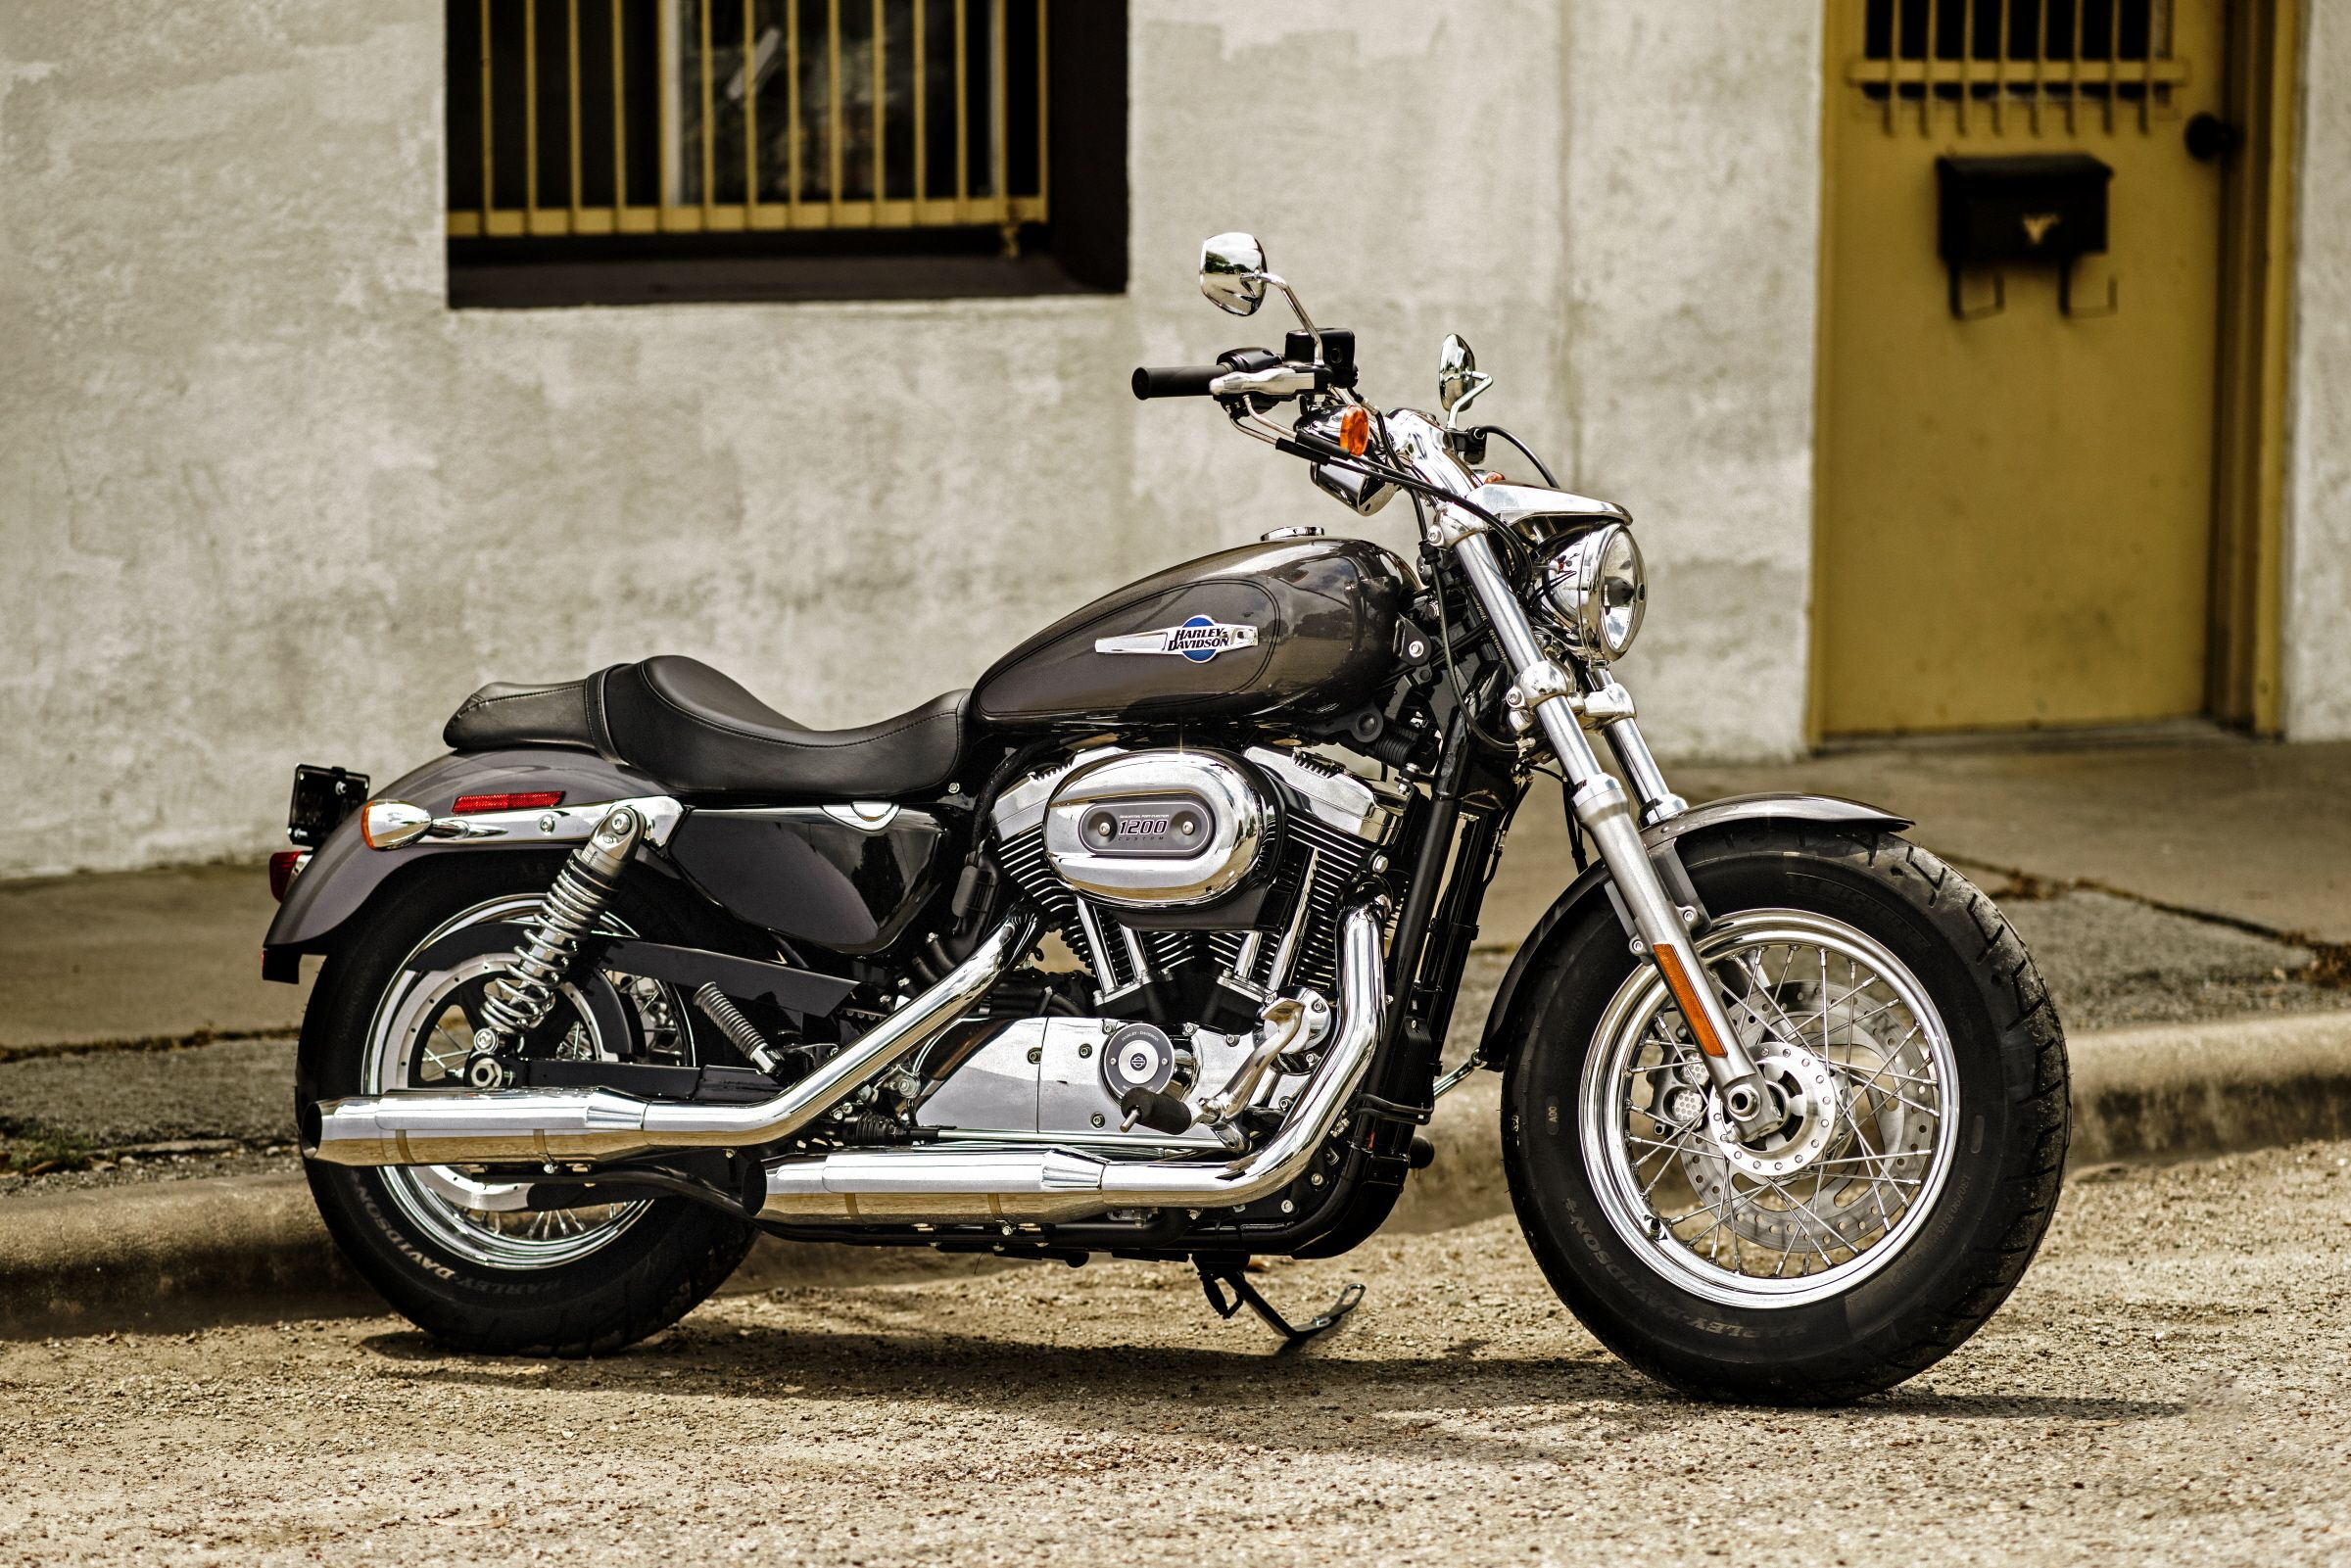 This is the sportster done with the kind of custom details only harley davidson brings to the street it s the ultimate wide shouldered custom cruiser